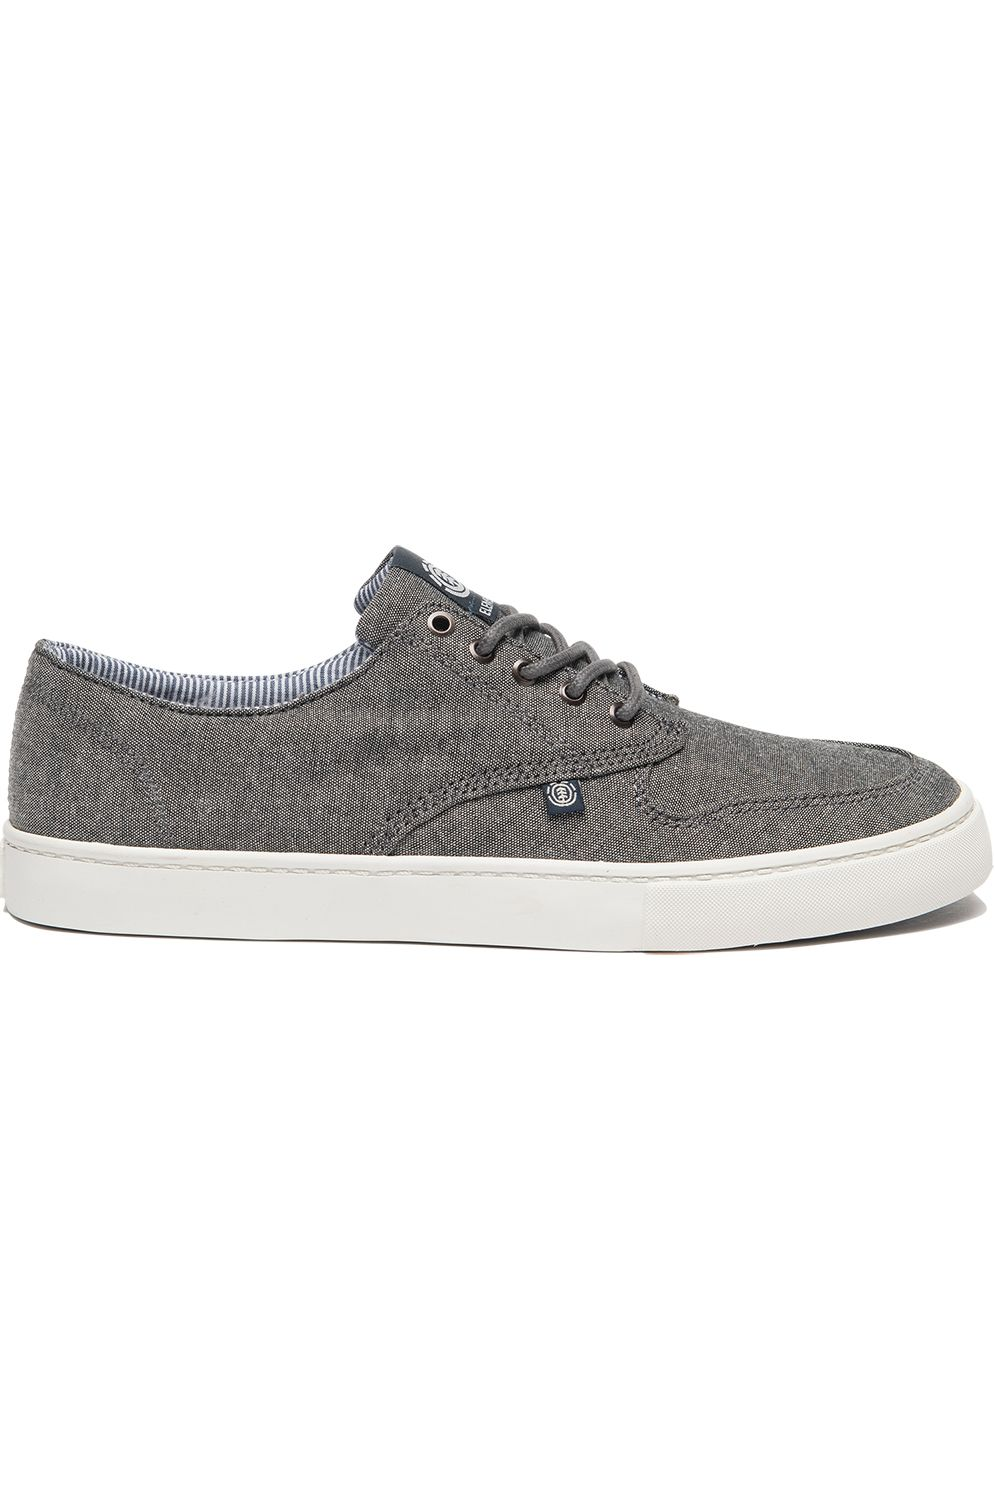 Element Shoes TOPAZ C3 Stone Chambray